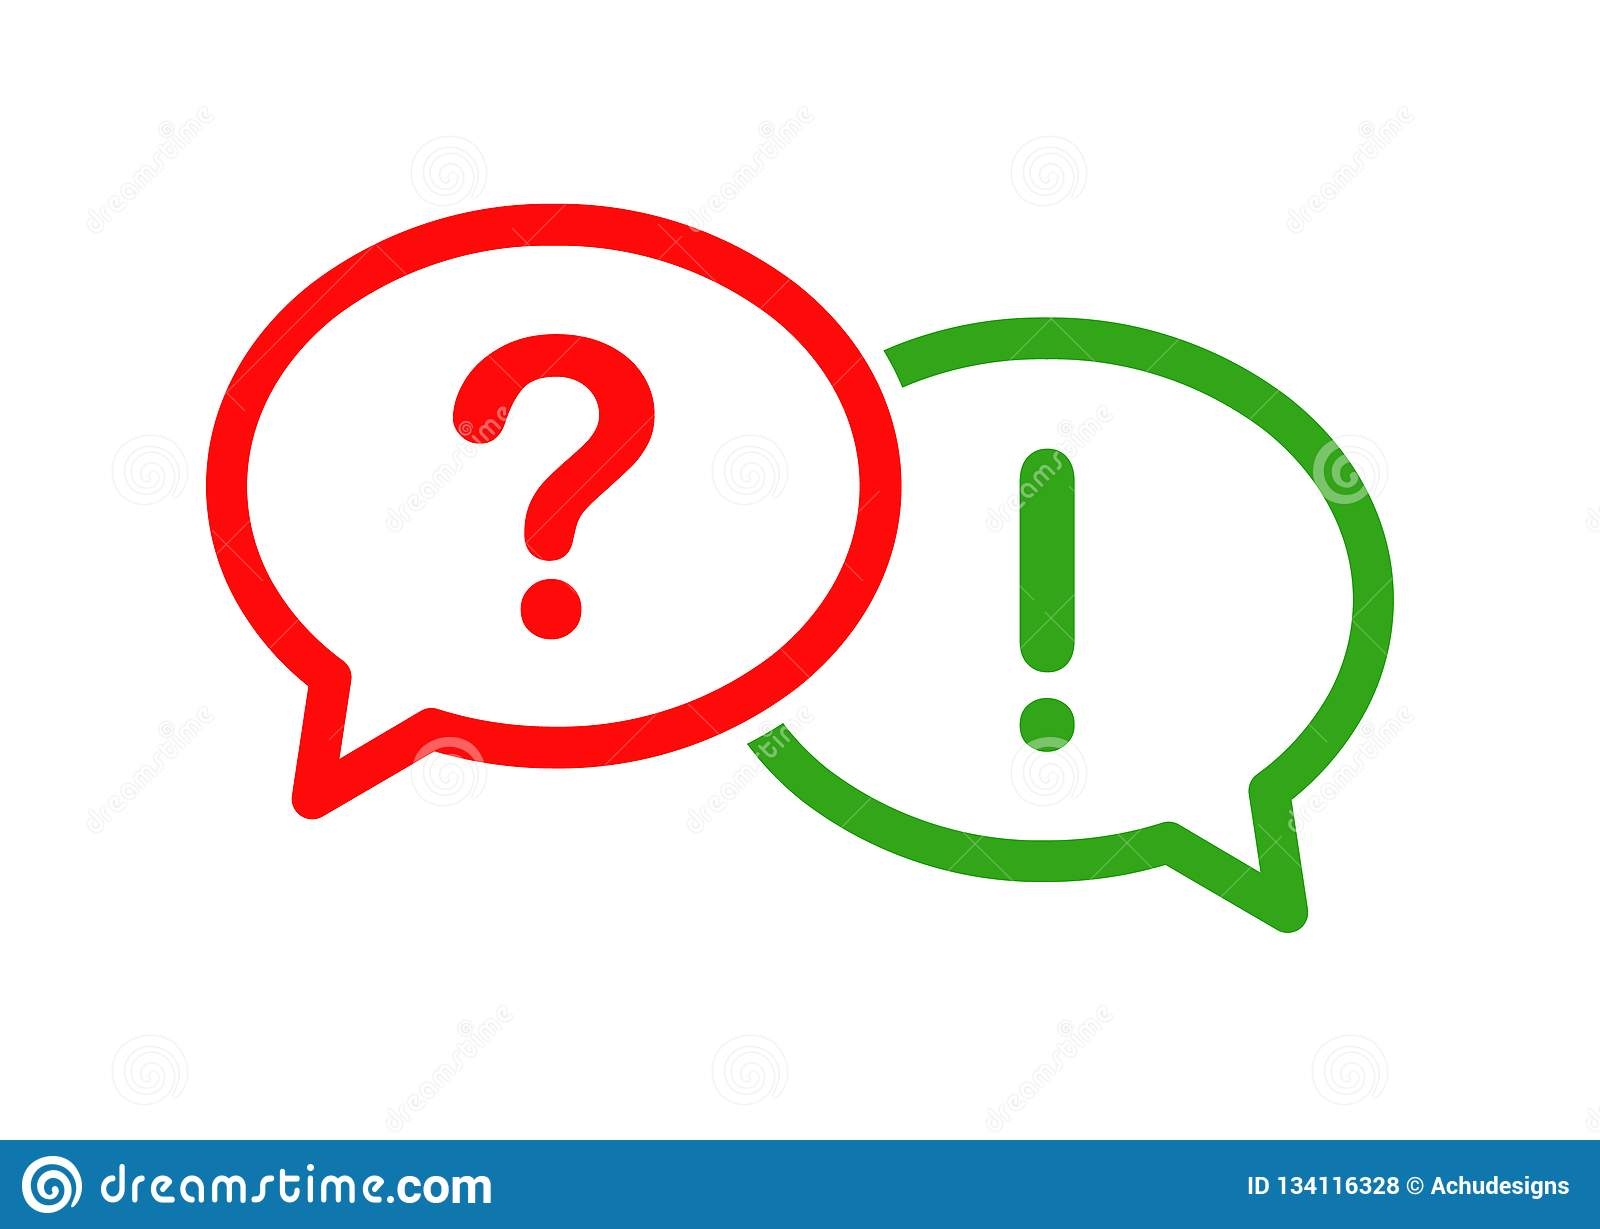 Question and answer bubble icon